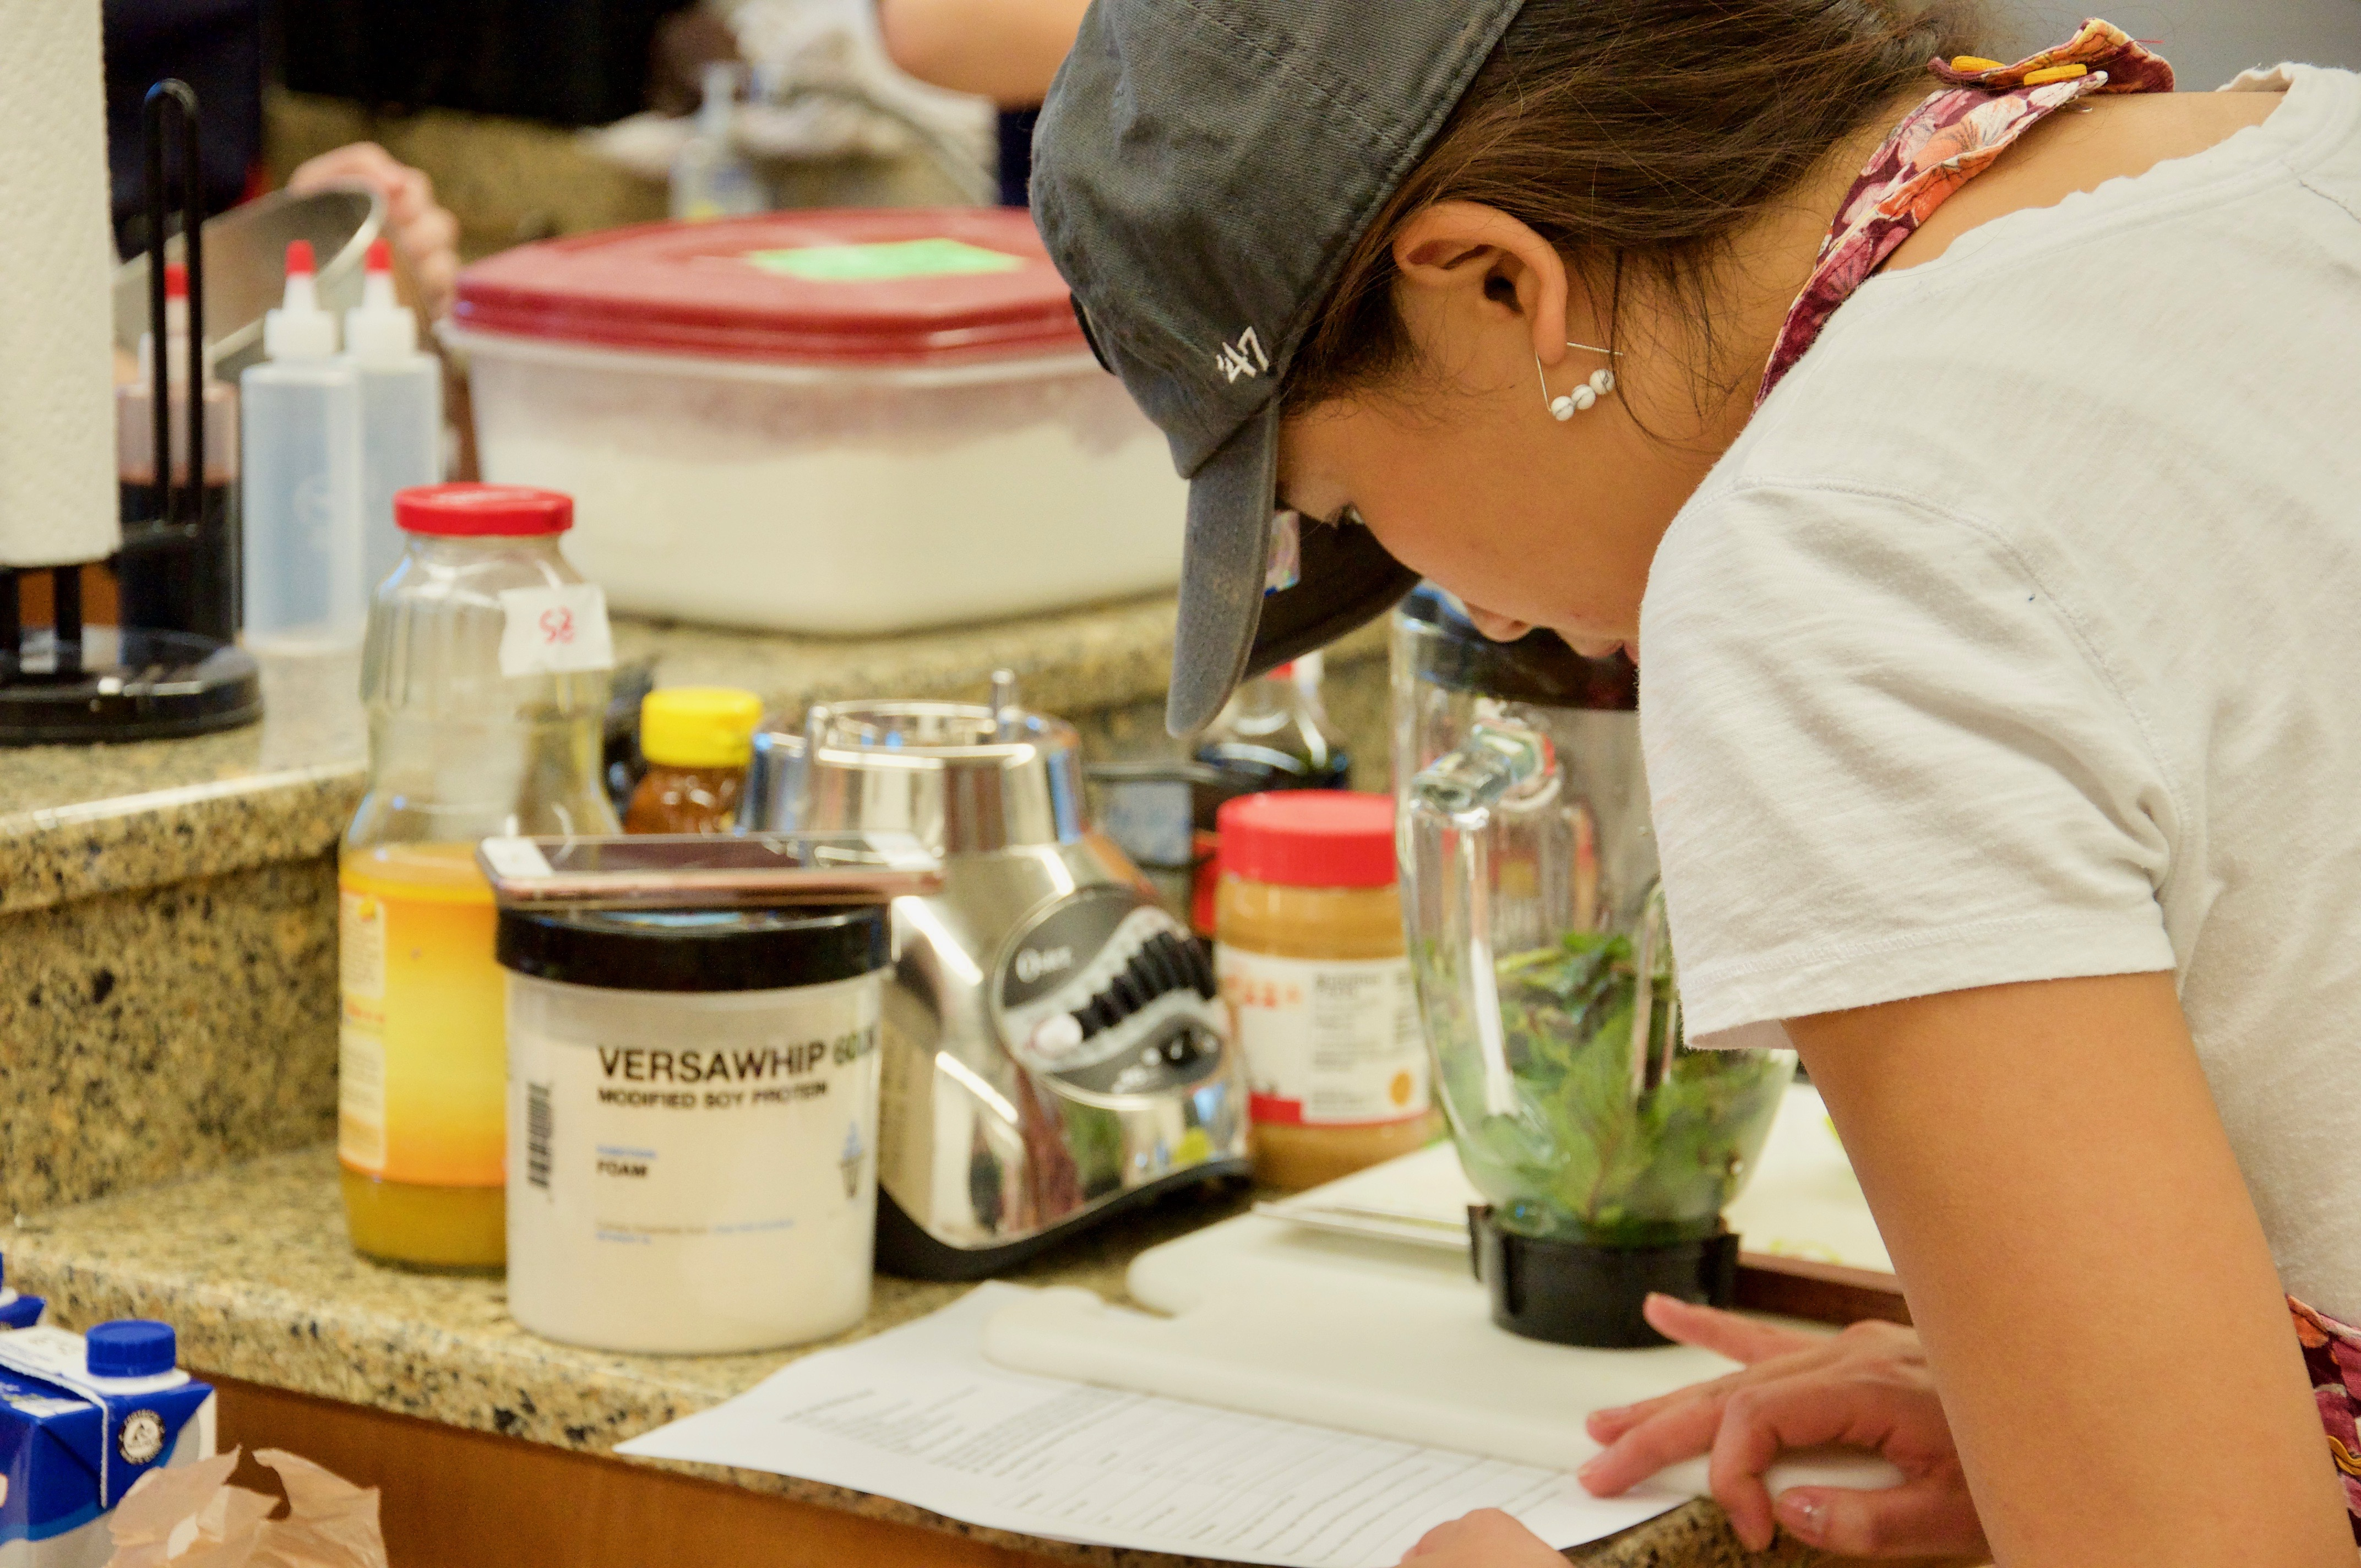 Student review recipe for Science of Experimental Cuisine course